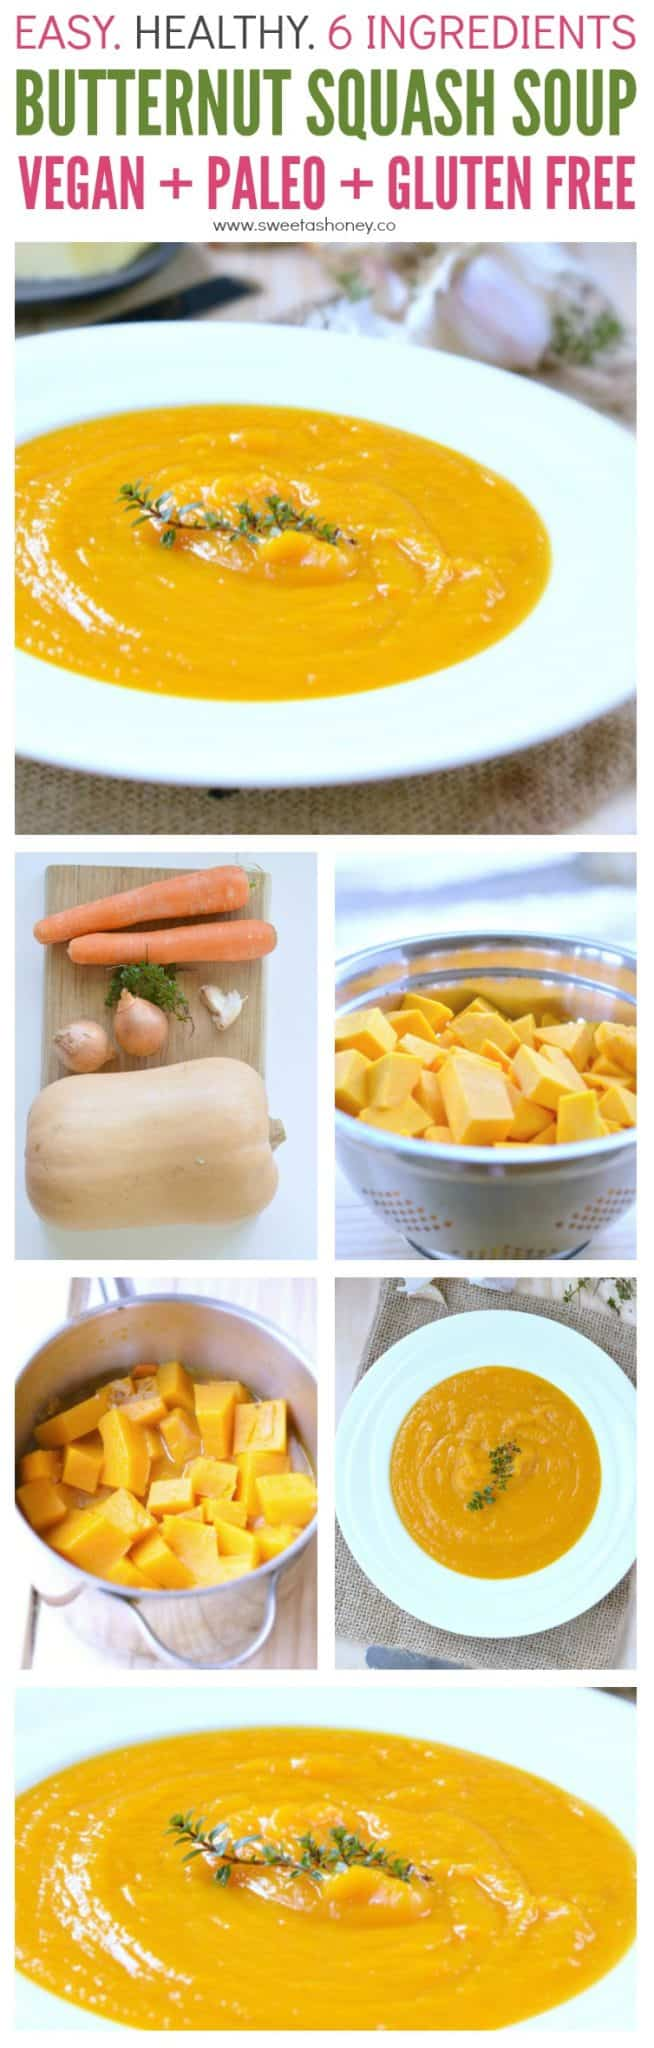 Healthy Butternut Squash Soup Vegan Recipe